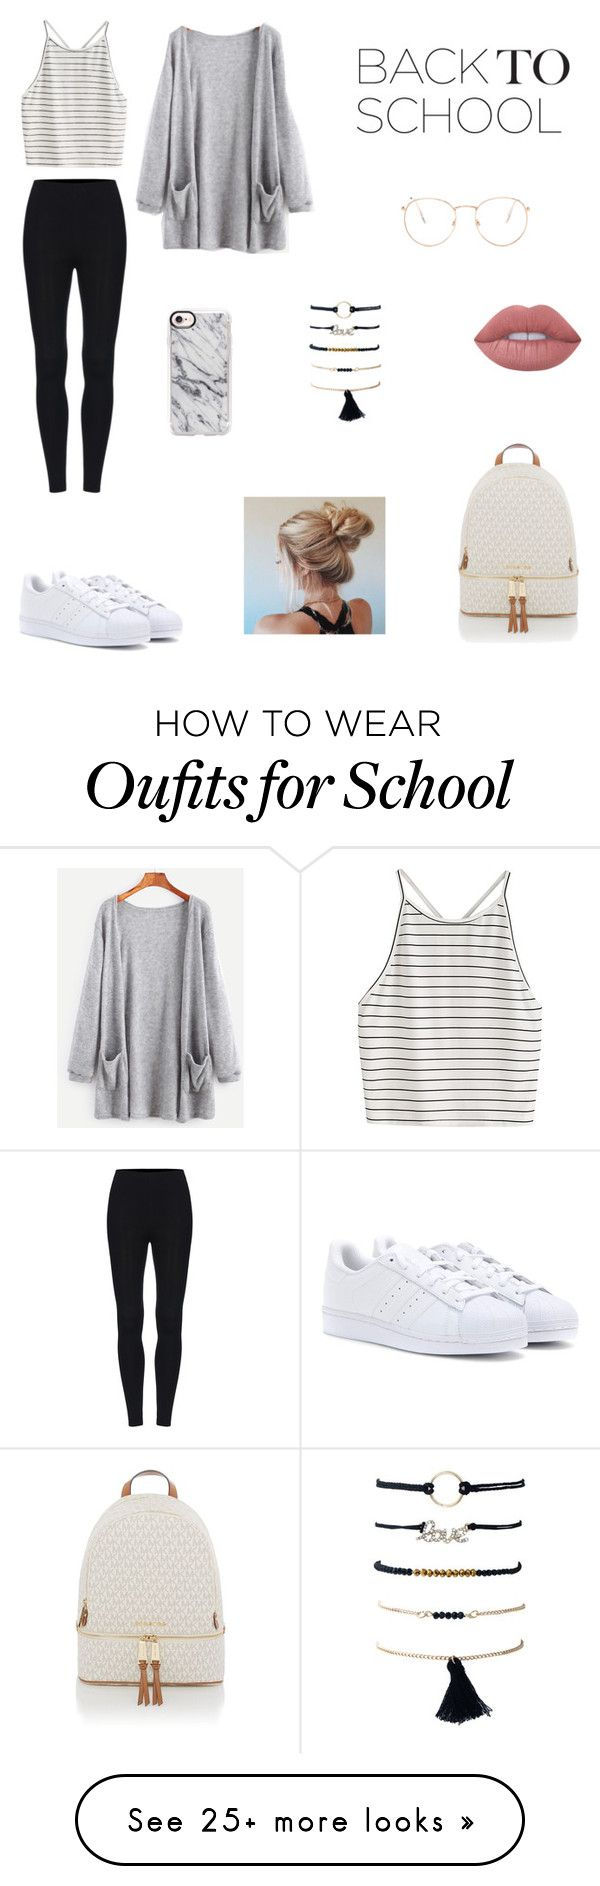 """""""School Style!"""" by olympia-valance on Polyvore featuring Glance Eyewear, Michael Kors, Casetify, Lime Crime and adidas"""